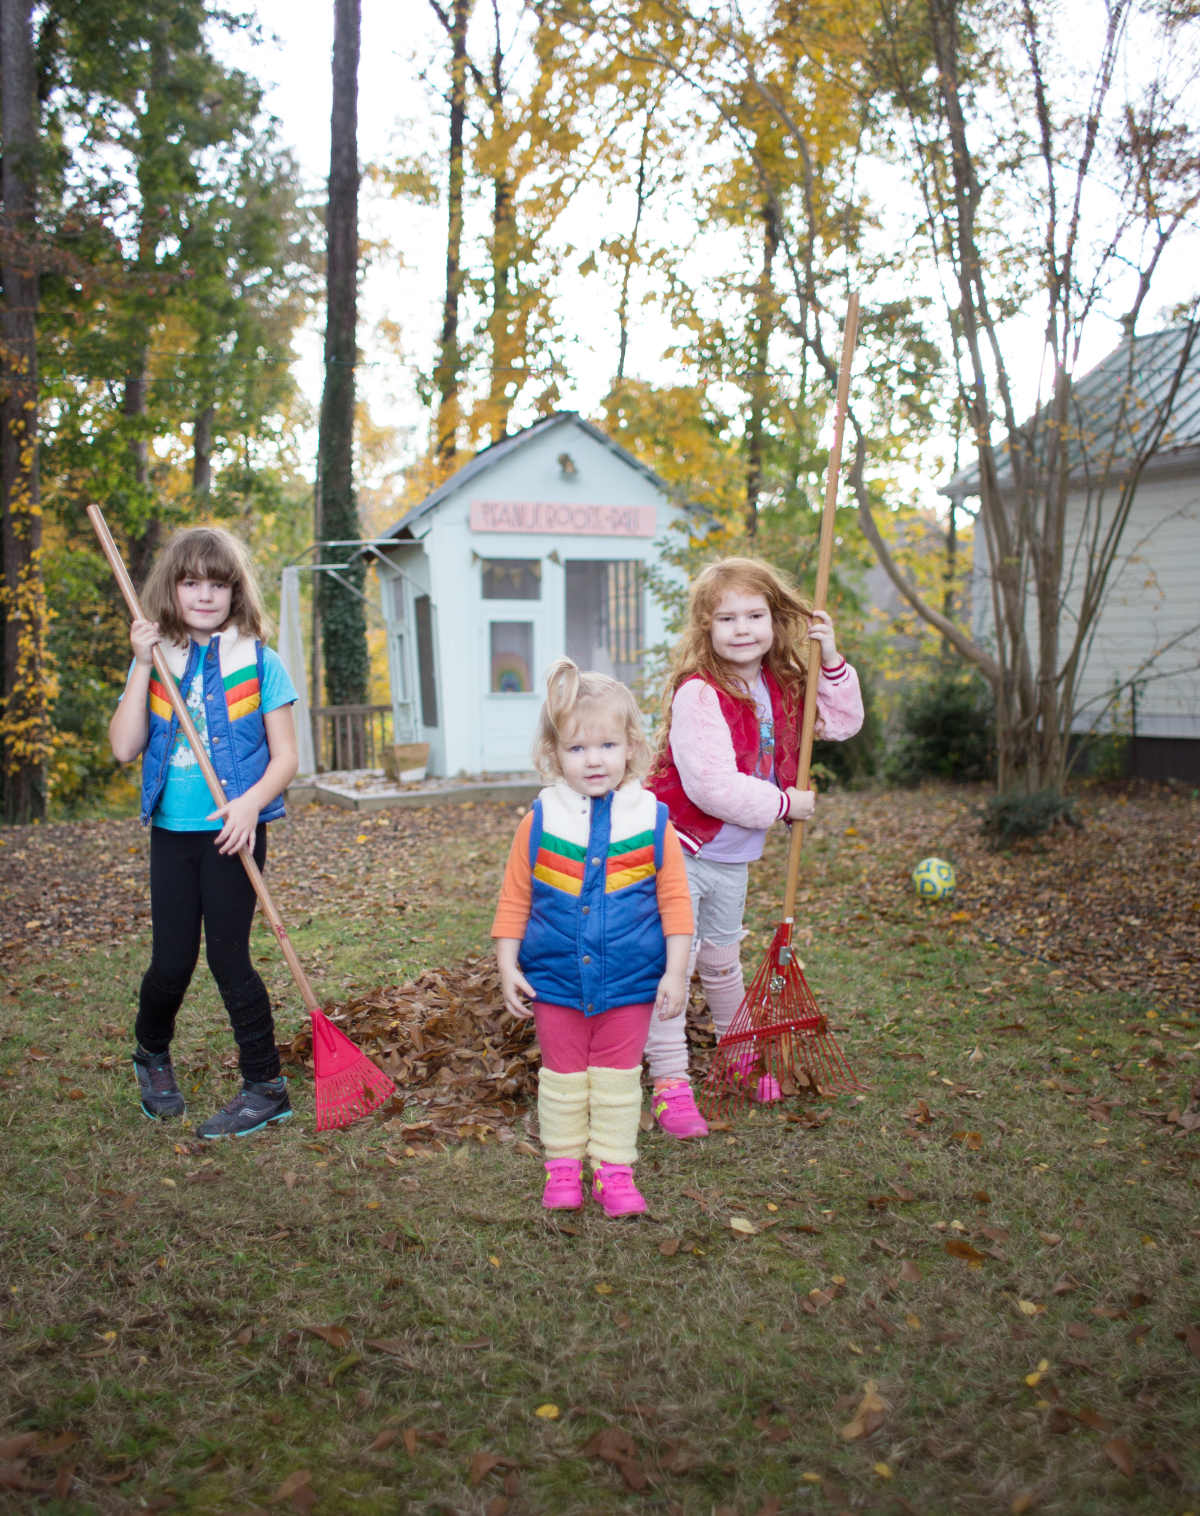 raking leaves with kids